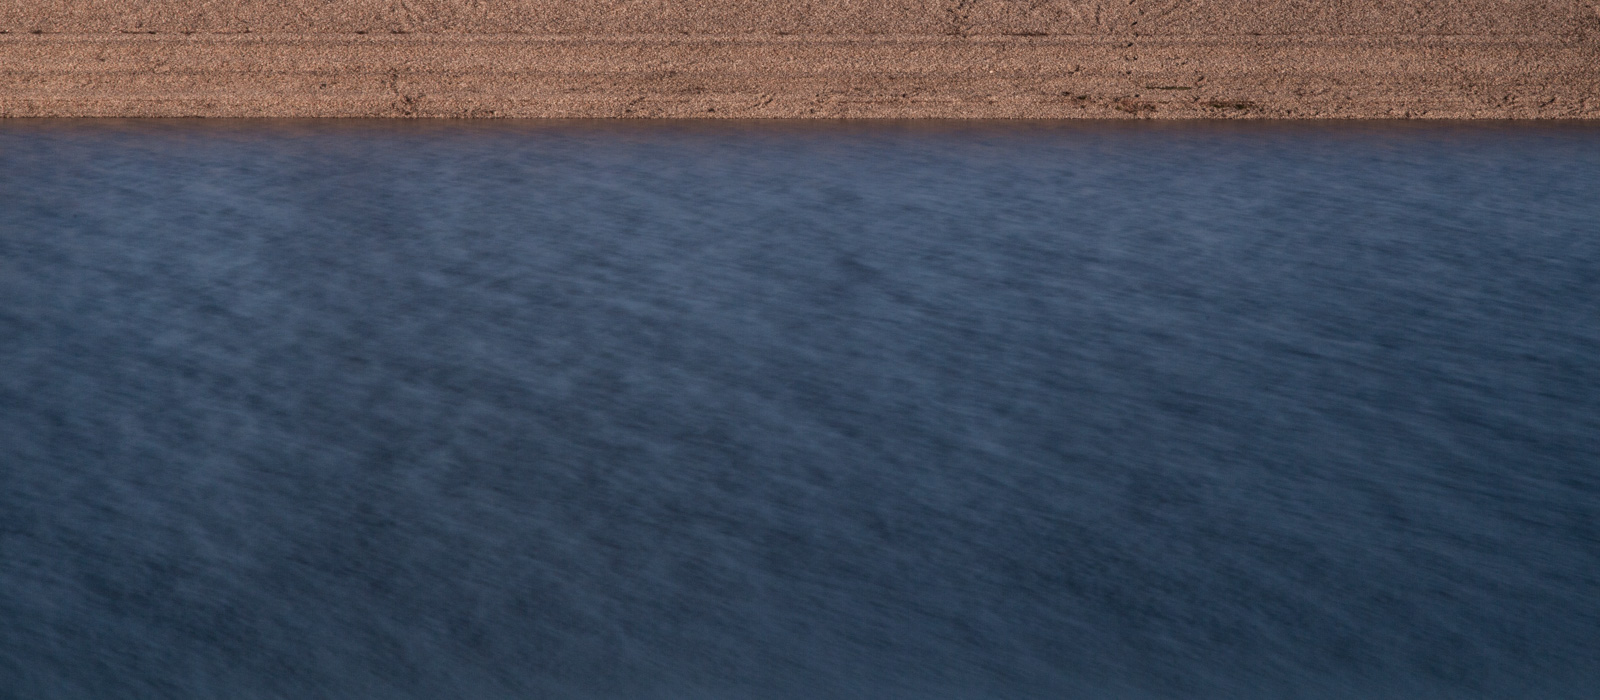 minimalistic horizontal image, seeming two-dimensional, showing a pebble beach and water with a smooth gradient from bright to dark blue and slight blur due to aperture